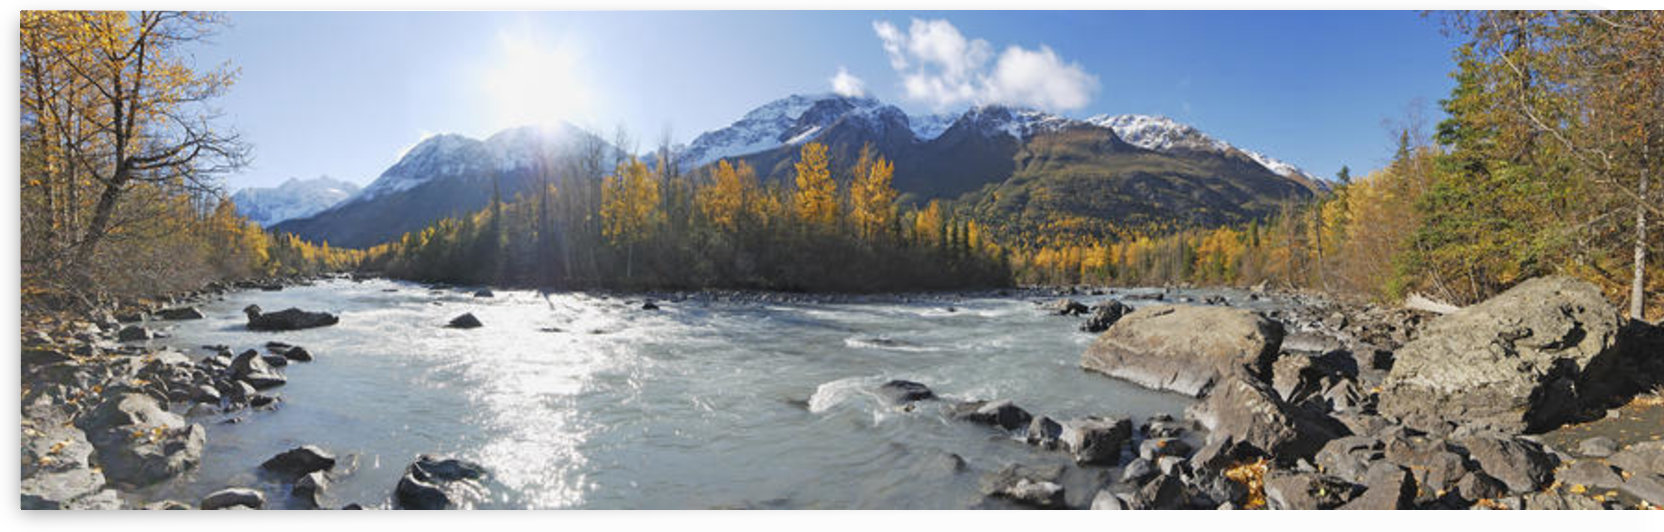 Panorama View Of Rapids Camp Along Eagle River In Chugach State Park, Southcentral Alaska by PacificStock